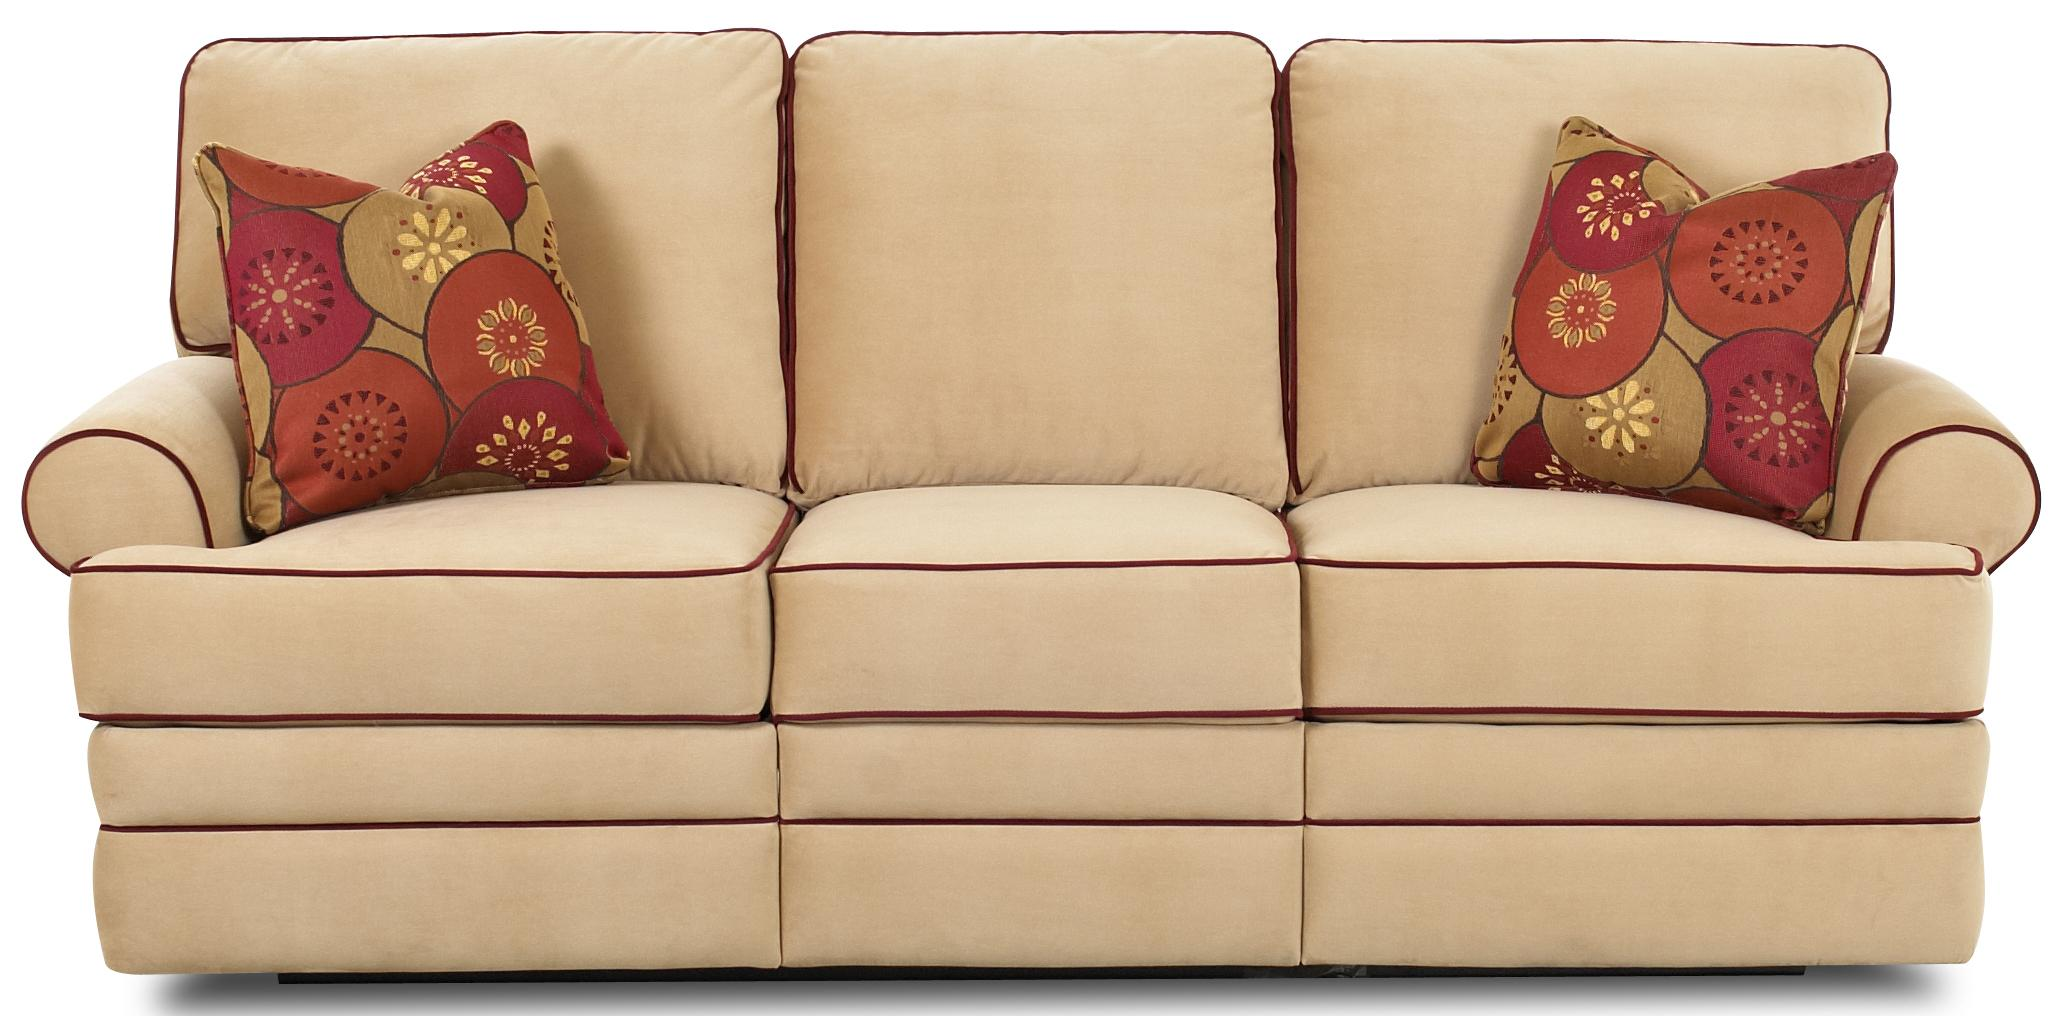 Klaussner Belleview Reclining Sofa - Item Number: 21303P RS